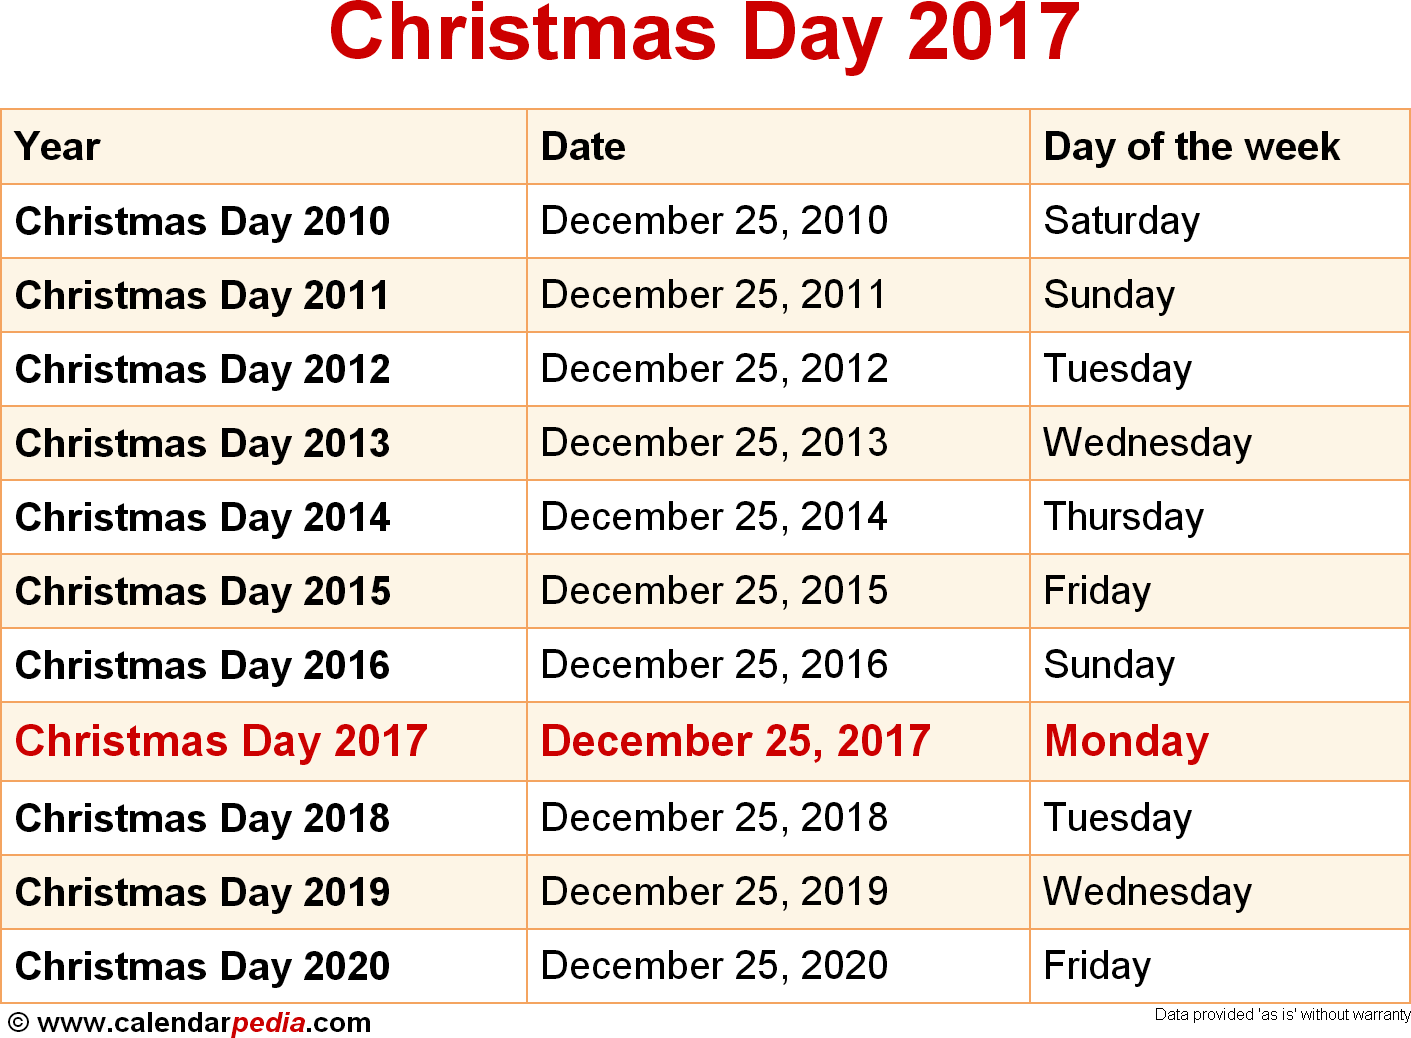 When is Christmas Day 2017 & 2018? Dates of Christmas Day